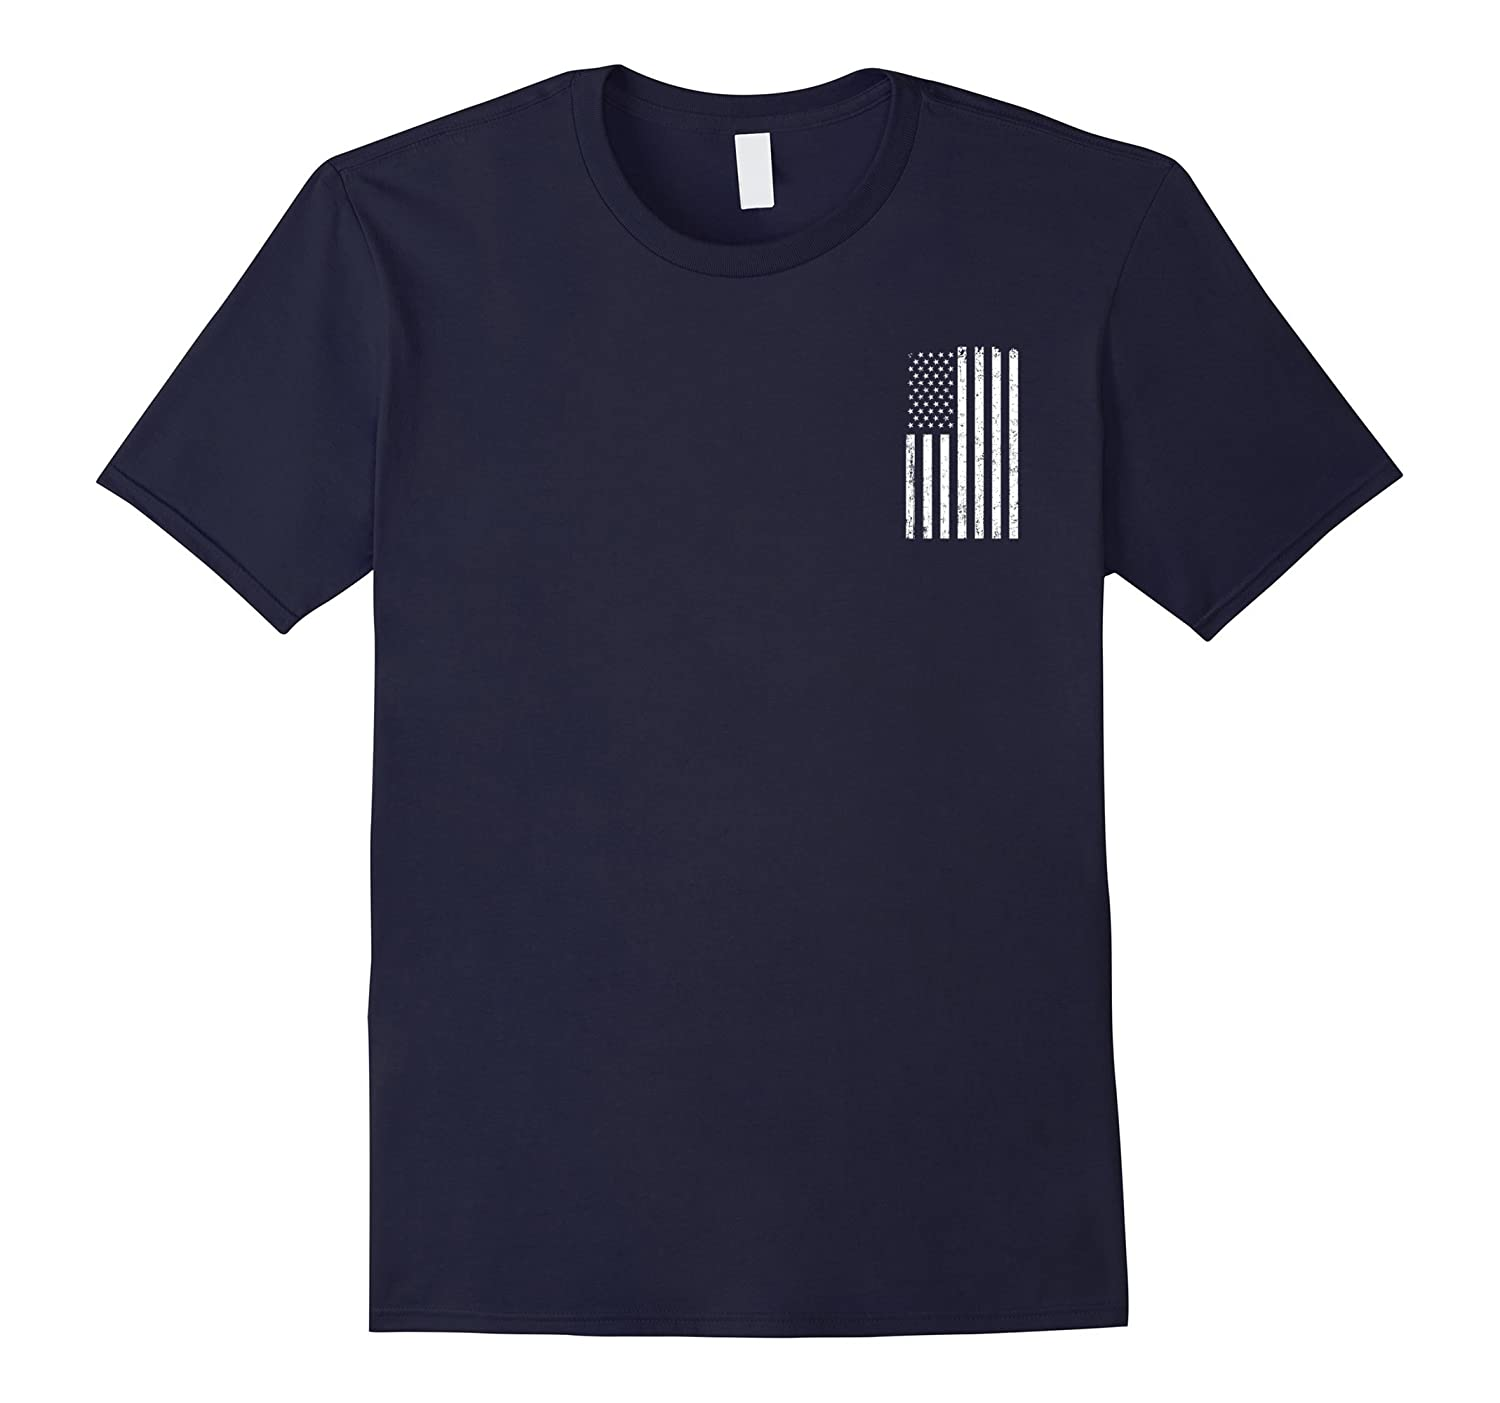 Veterans Before Refugees T-Shirt – Both Sides Printed